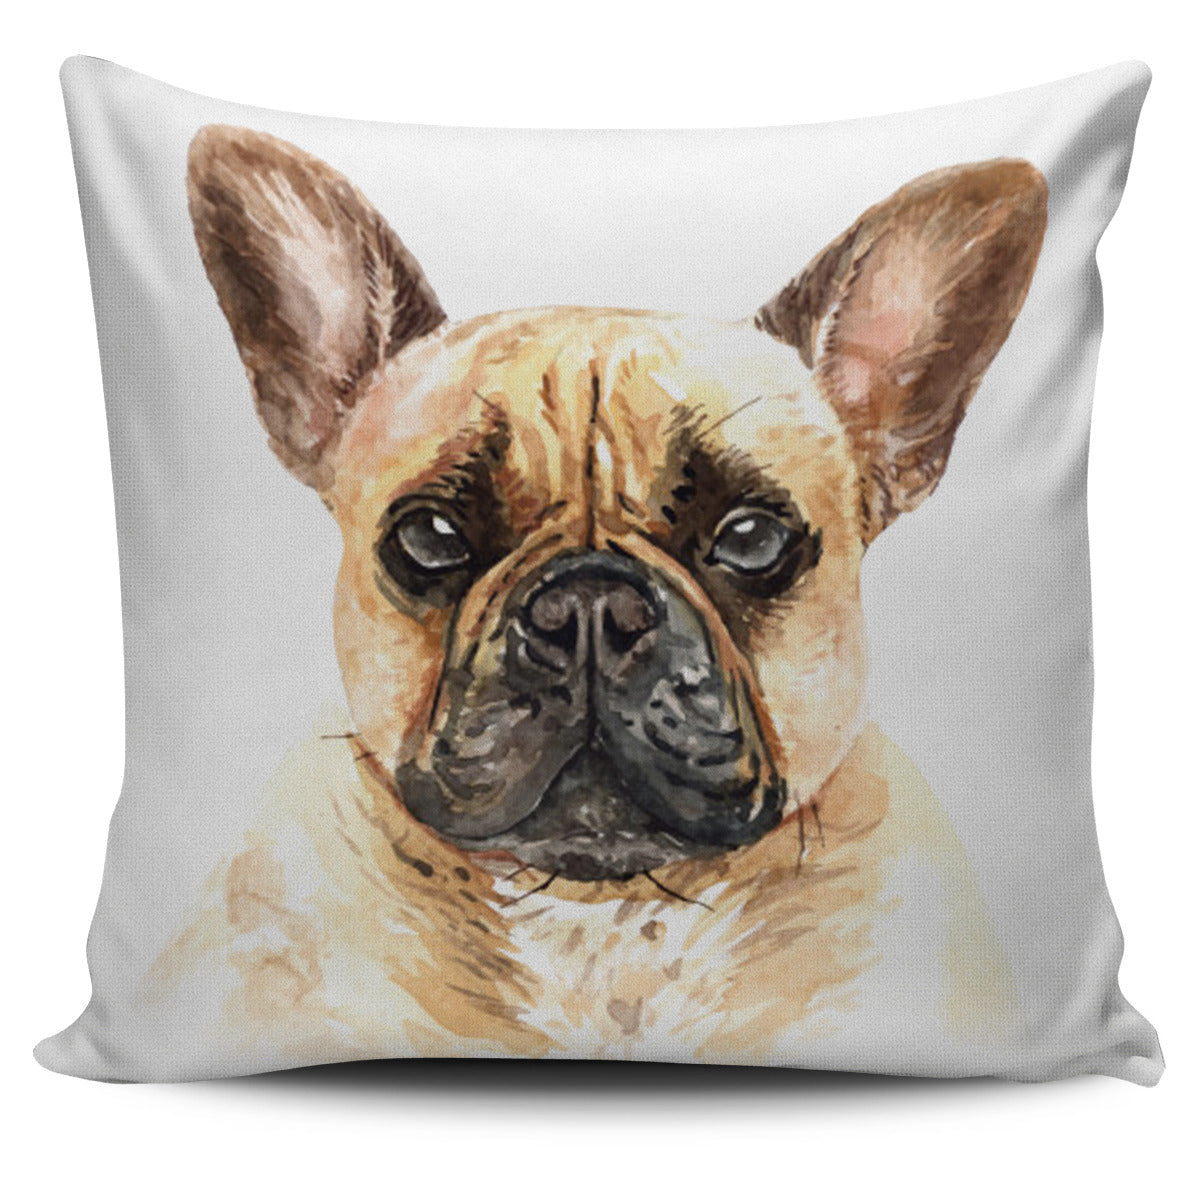 Zoey French Bulldog Pillow - Frenchie Bulldog Shop